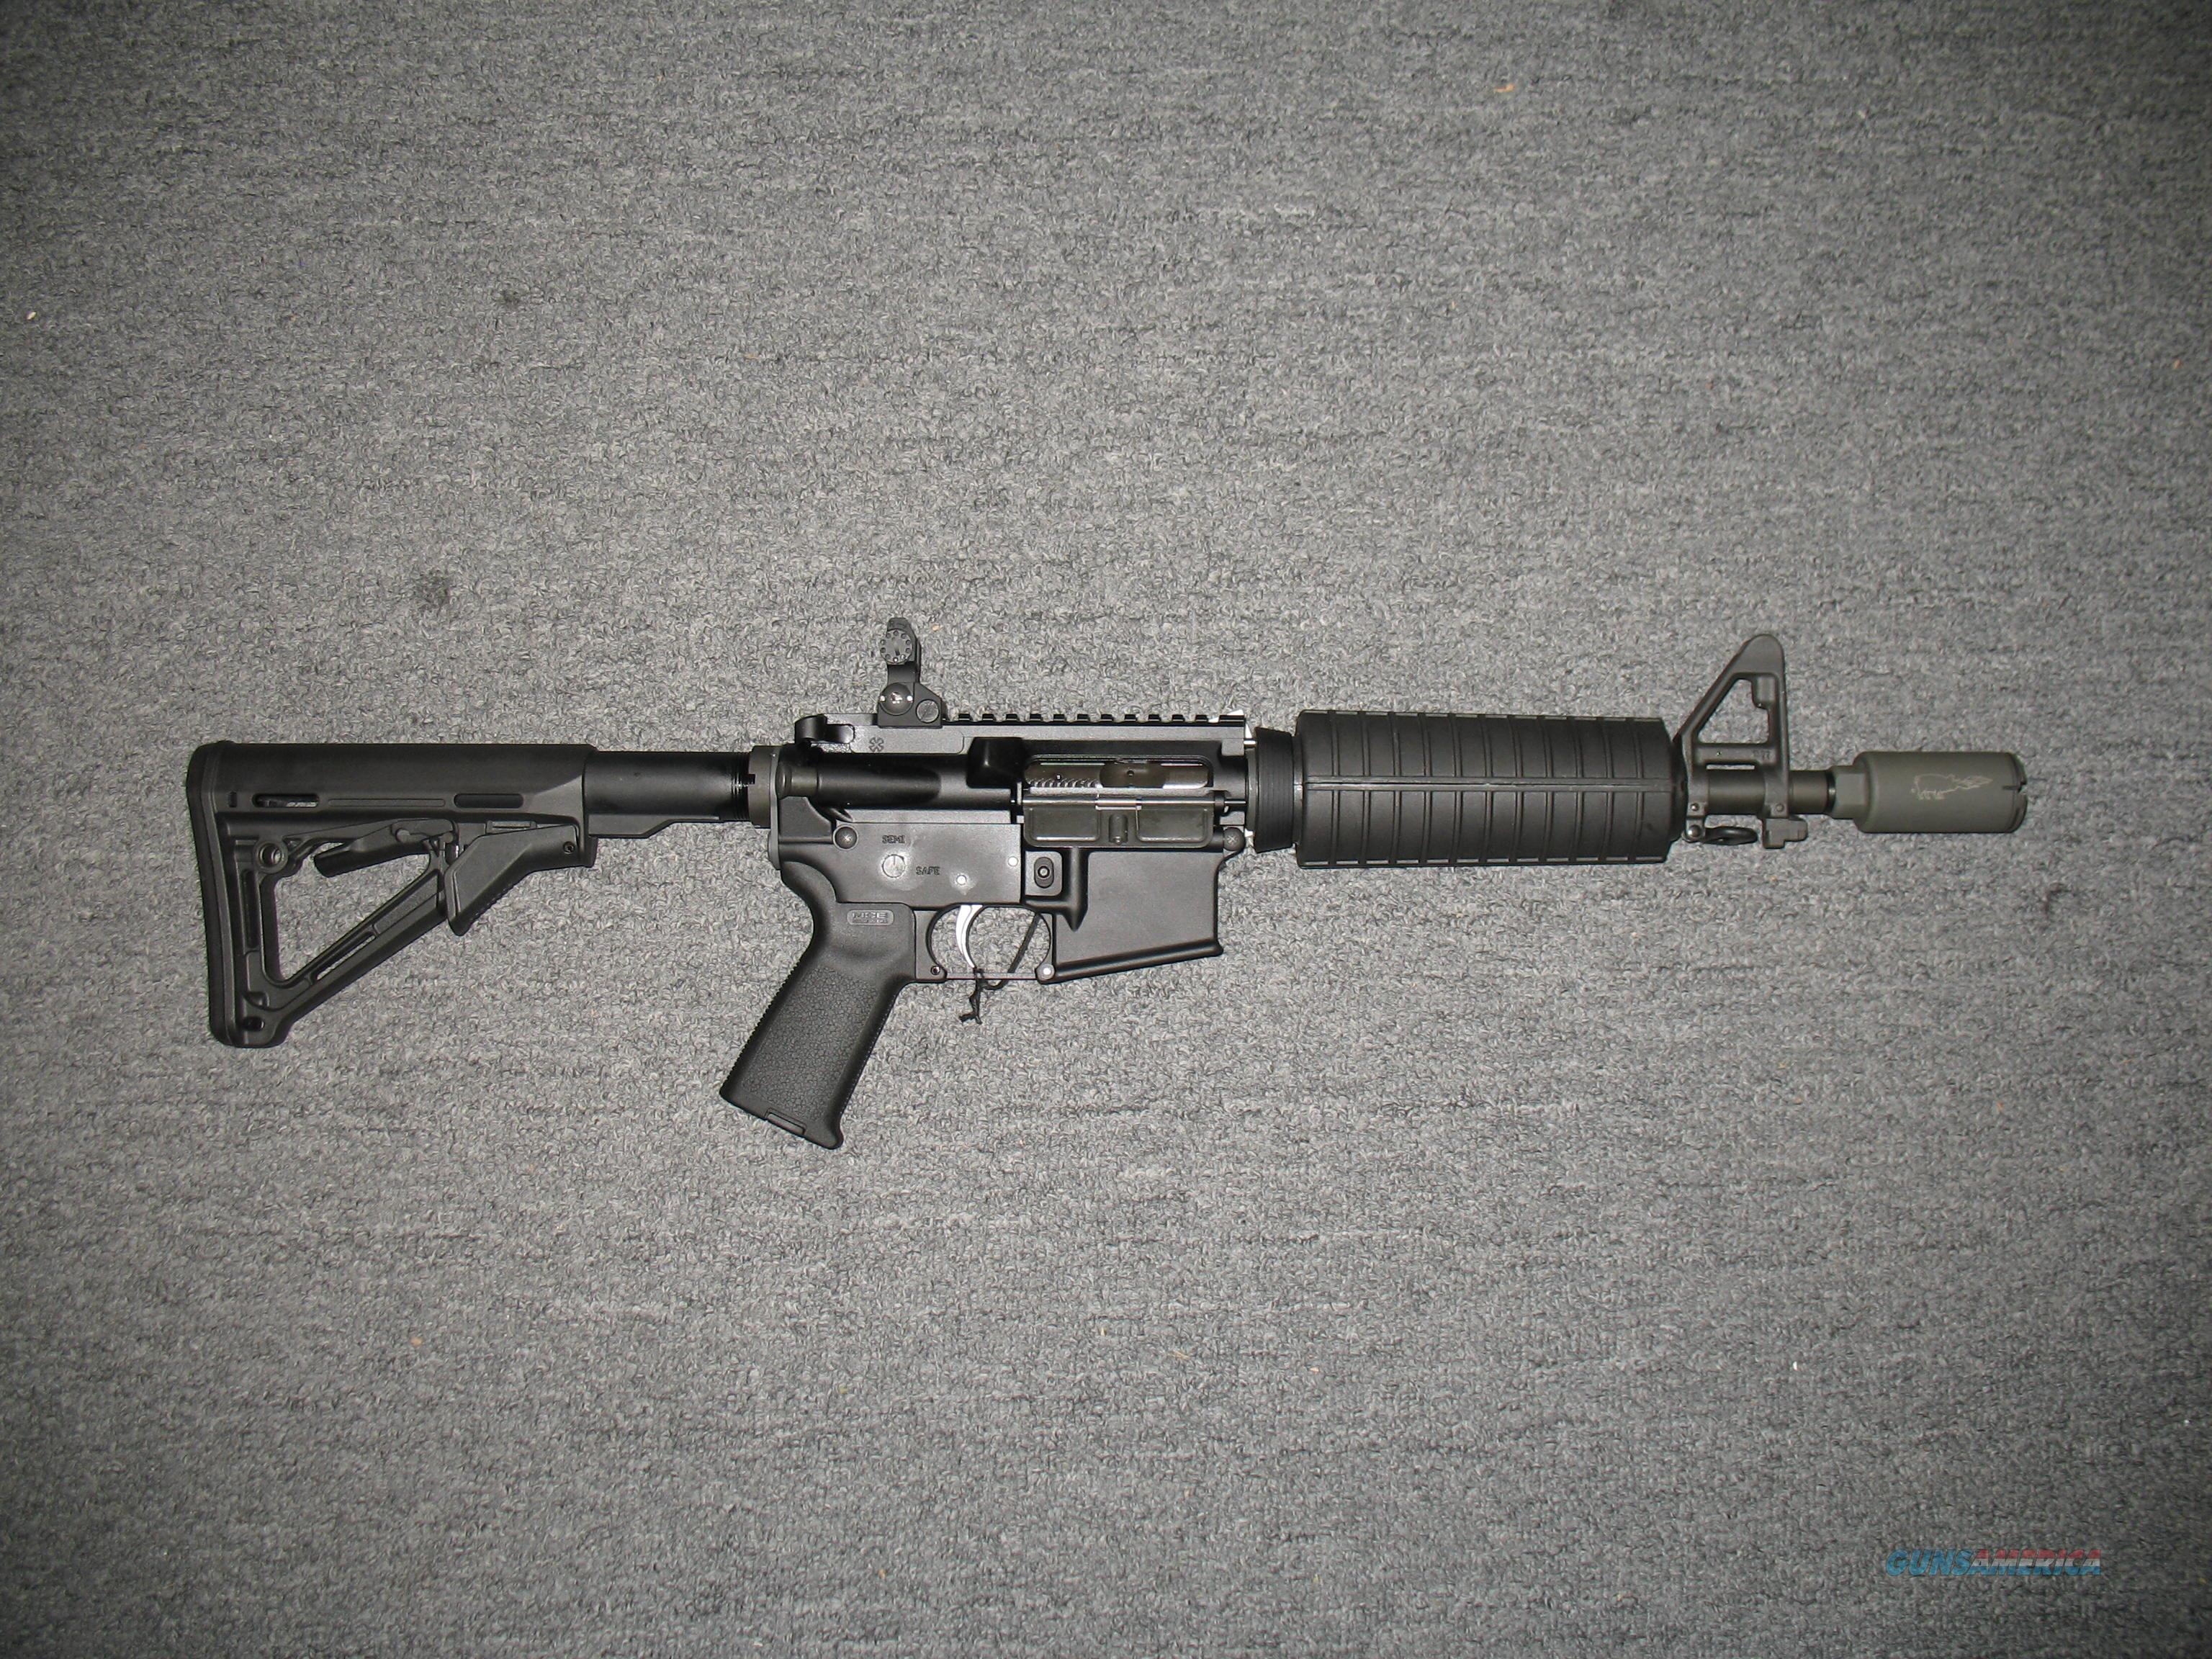 "Noveske N4 SBR (NFA Item) w/10.5"" bbl., Flaming Pig flash suppressor  Guns > Rifles > AR-15 Rifles - Small Manufacturers > Complete Rifle"